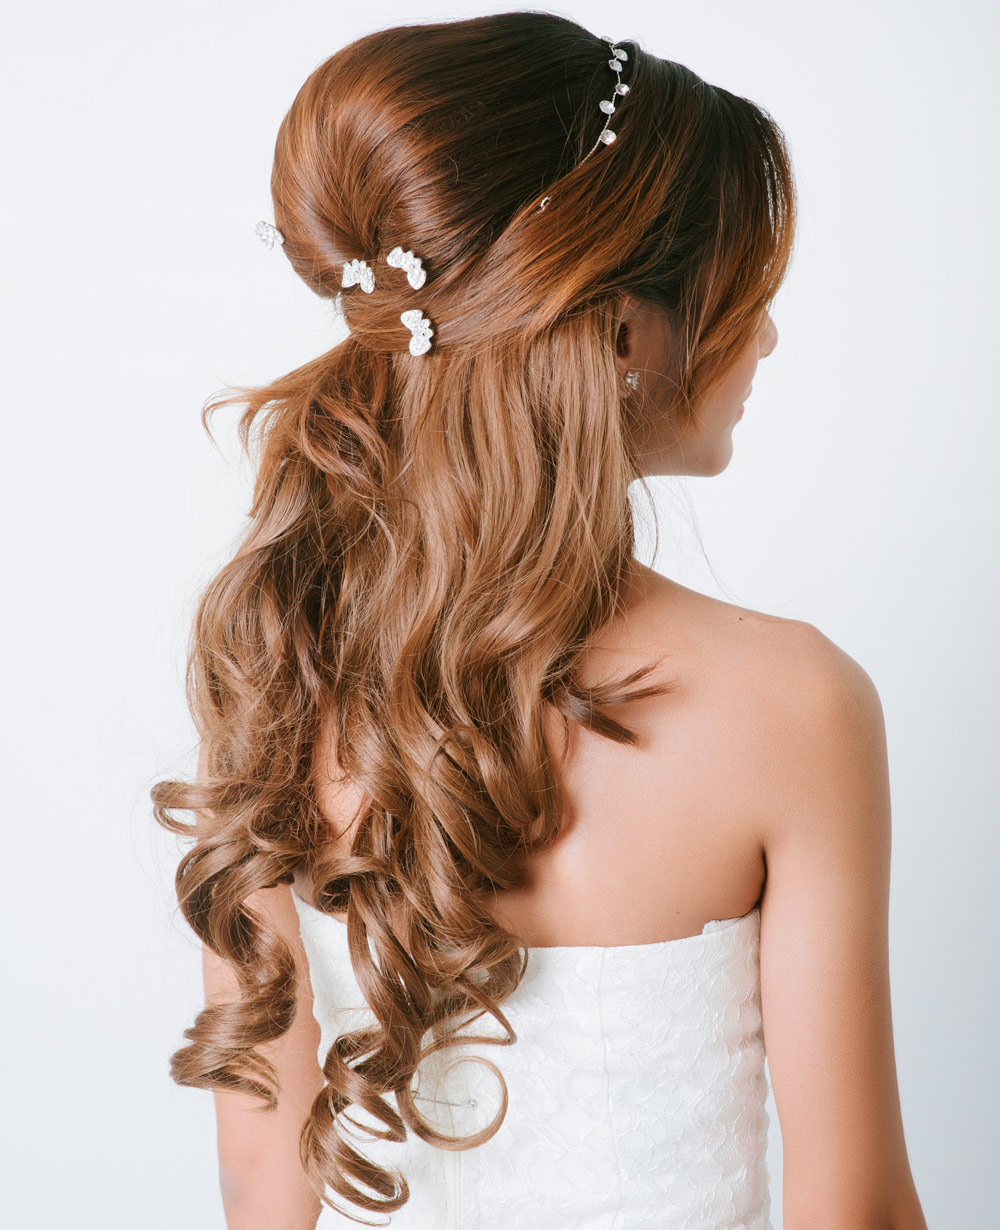 Hairstyle Bride Long Hair Seeds Collected